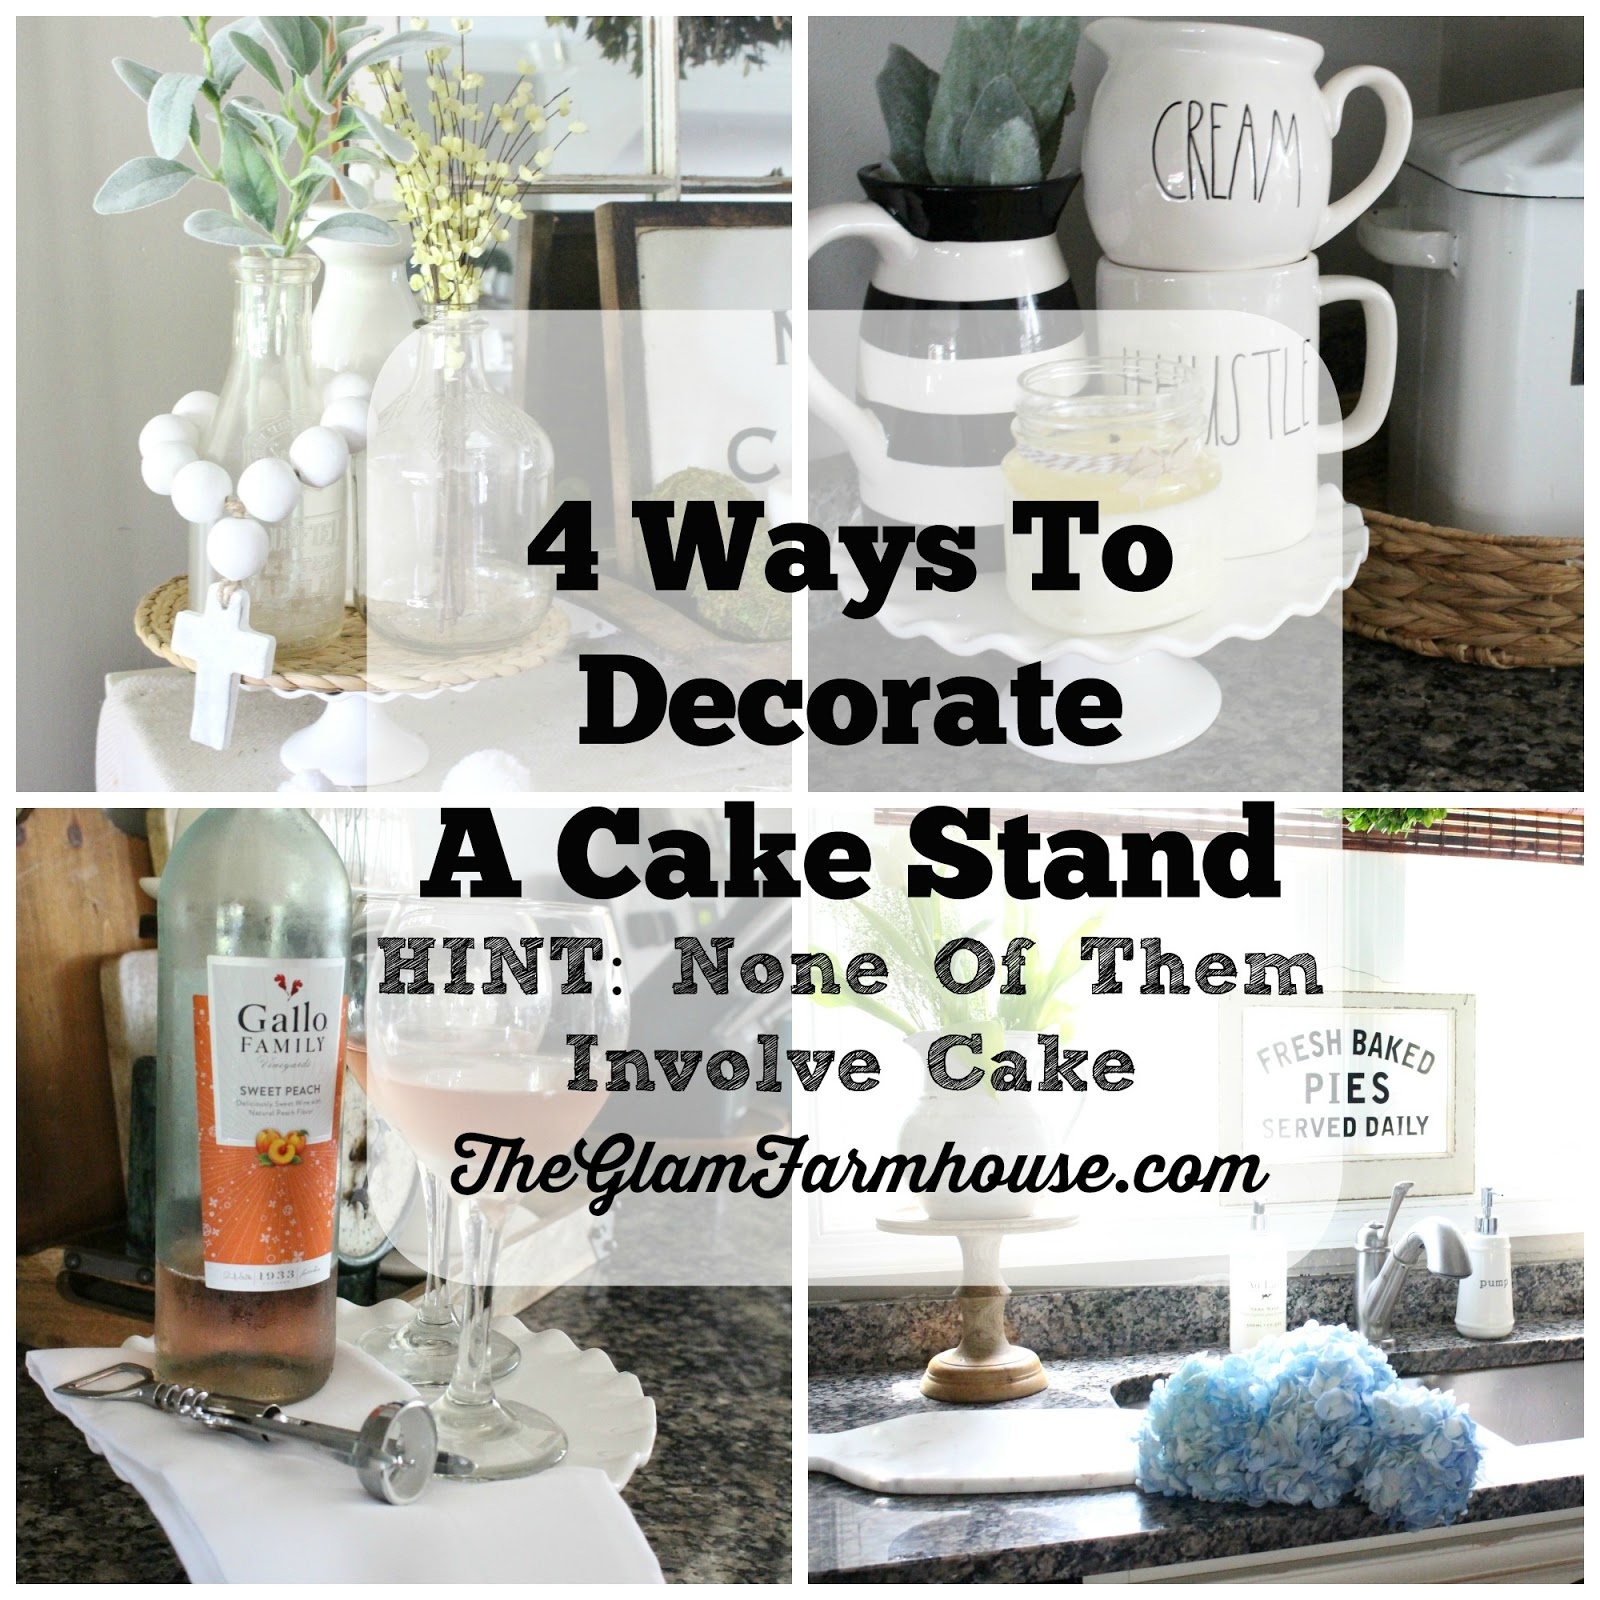 4 Ways To Decorate A Cake Stand! - The Glam Farmhouse